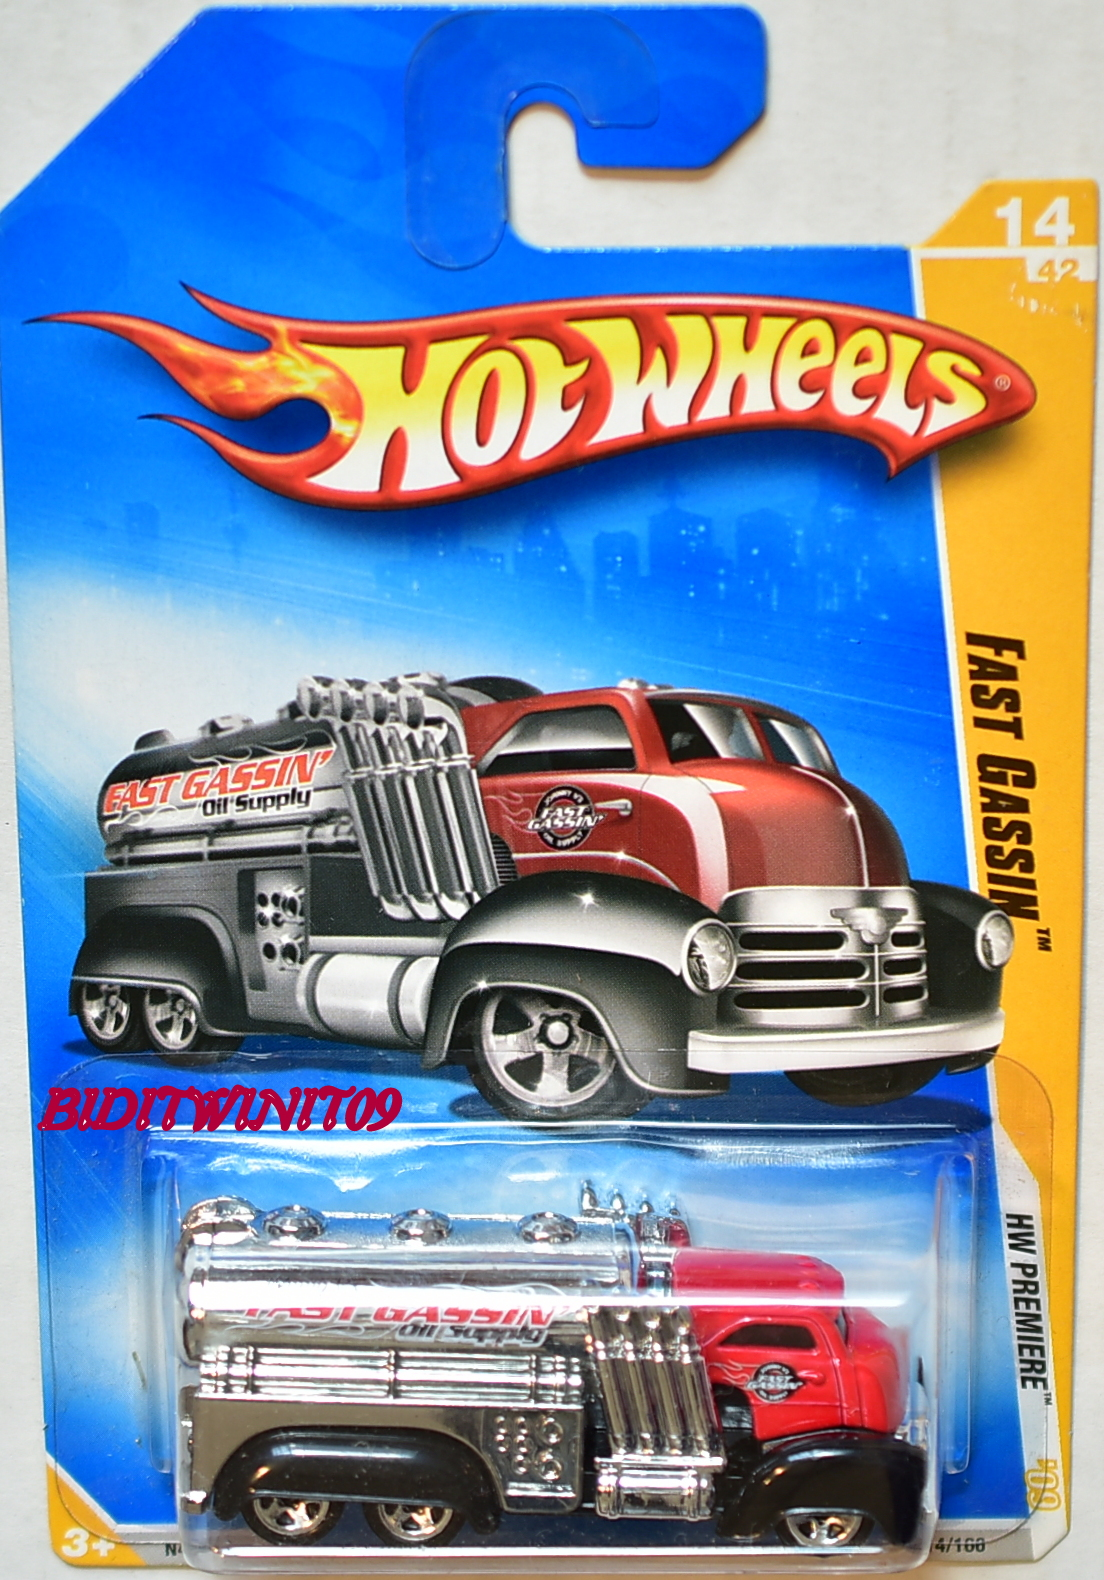 HOT WHEELS 2009 HW PREMIERE FAST GASSIN #14/42 RED E+